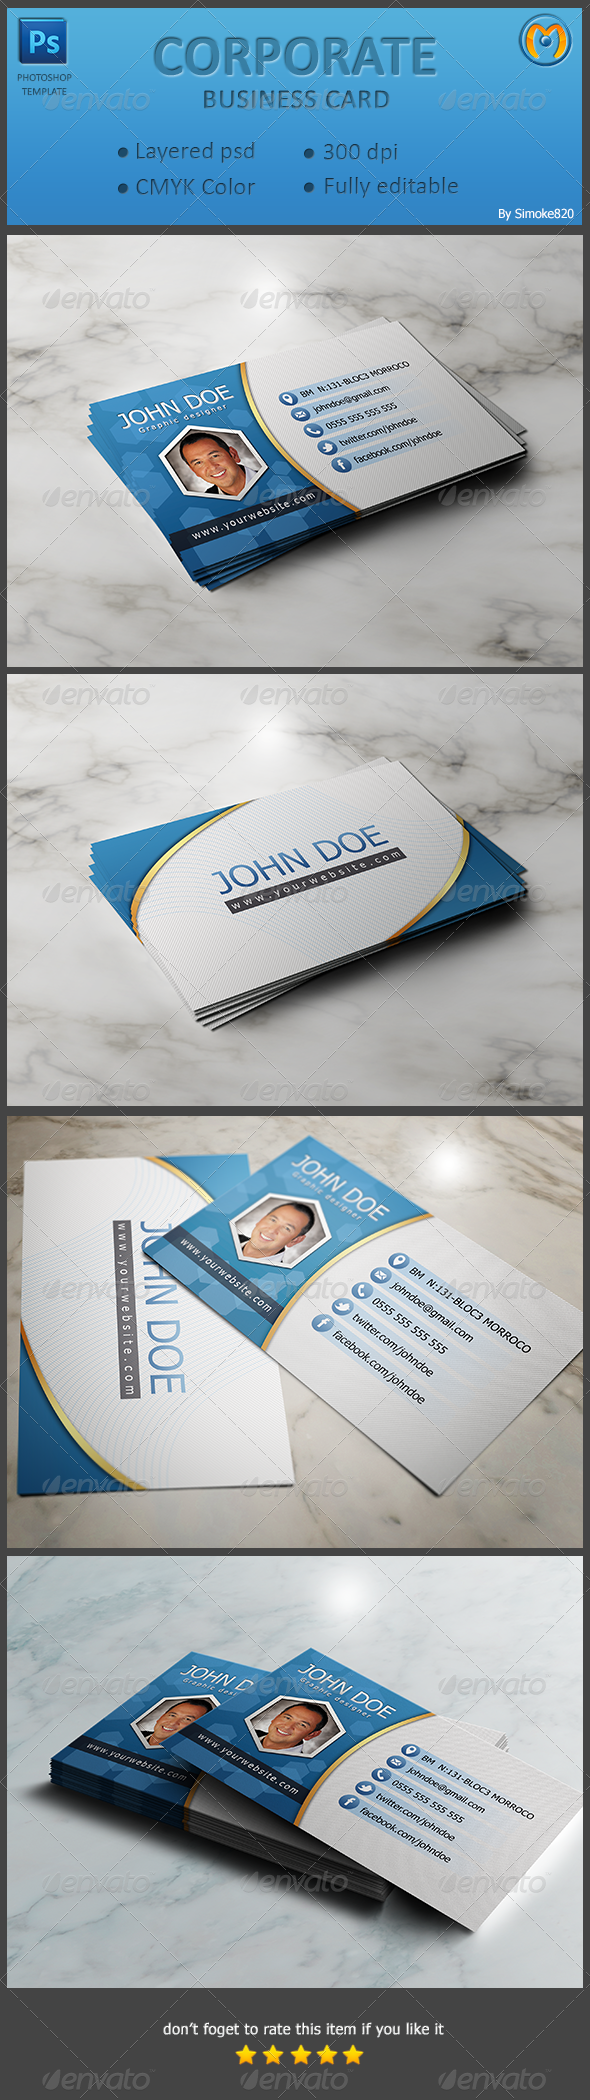 GraphicRiver Corporate Business Card V.4 6872624